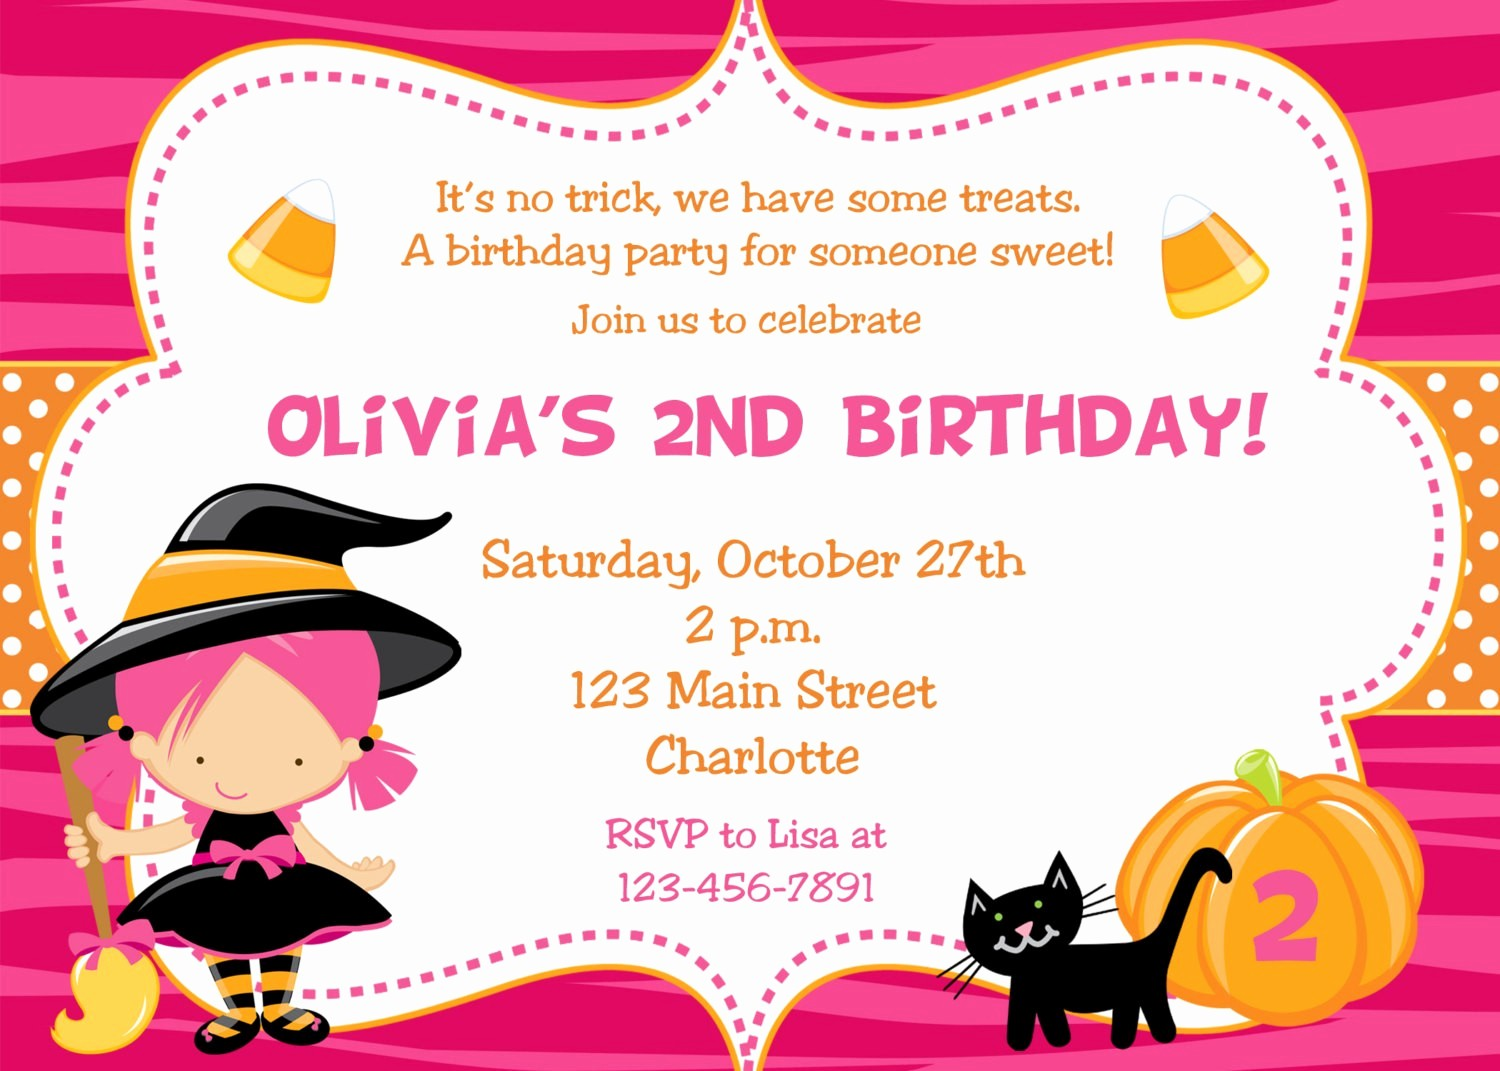 Invitation format for Birthday Party New Halloween Birthday Party Invitations – Fun for Christmas